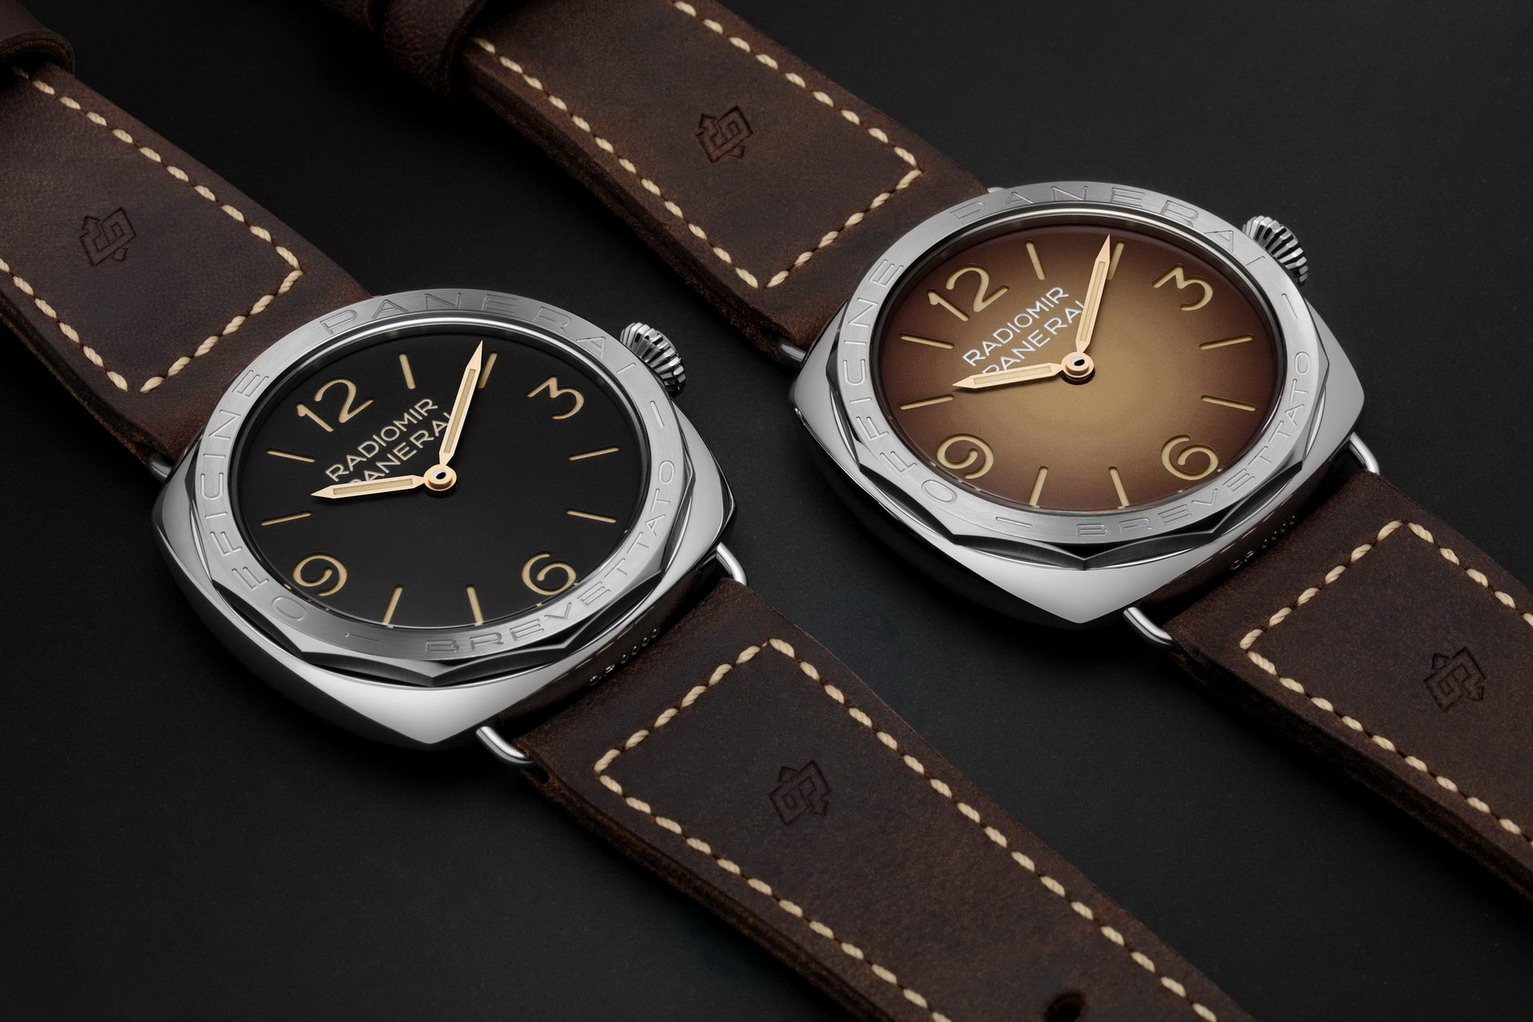 PAM00685 AND PAM00687